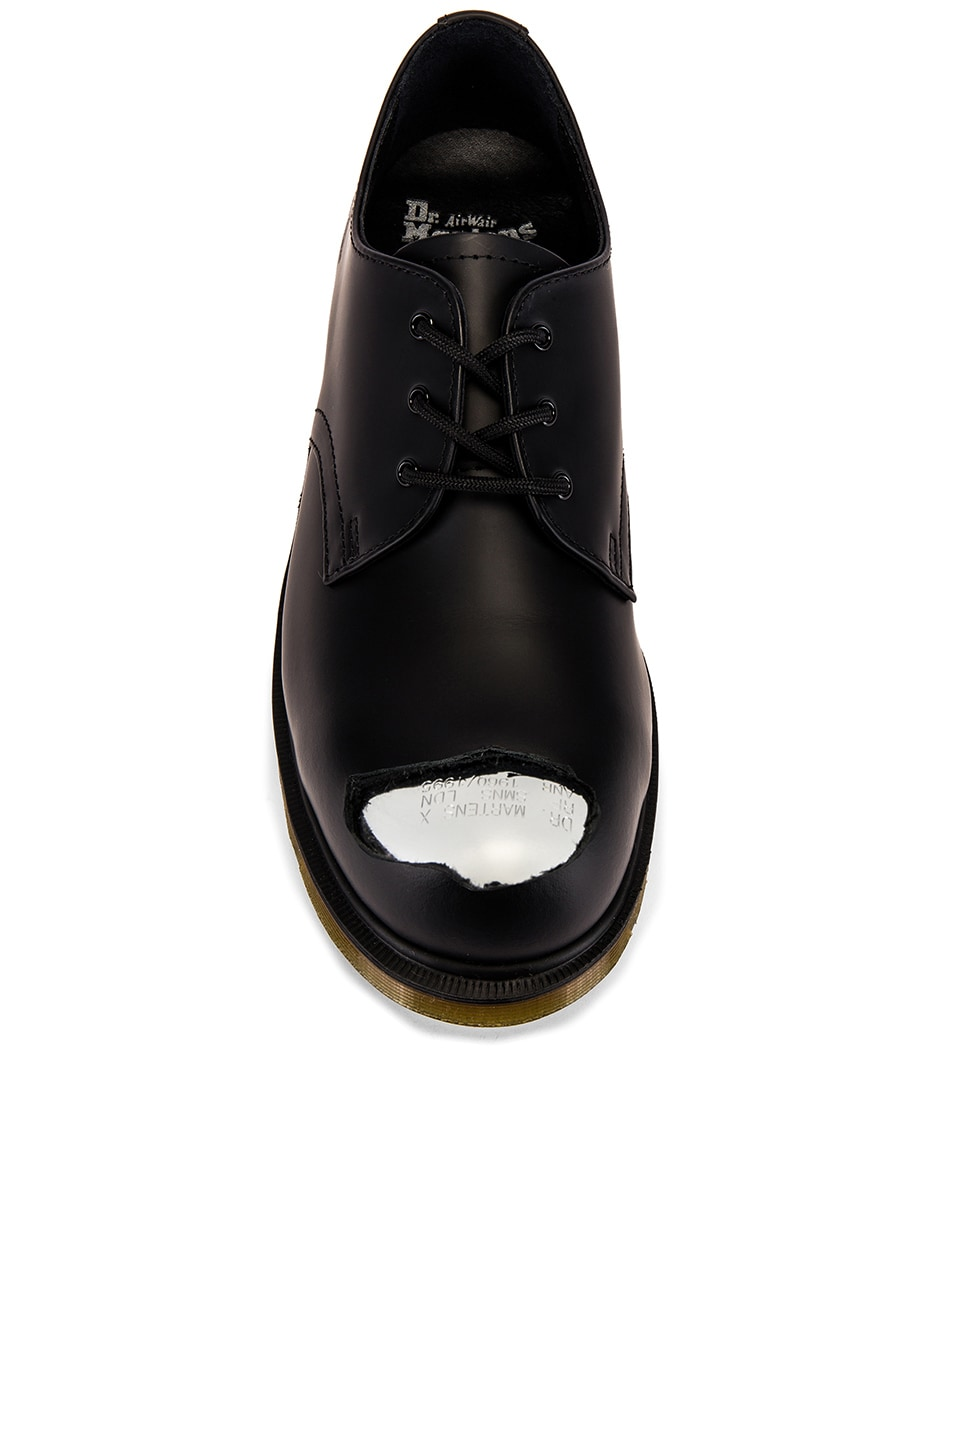 Image 4 of Raf Simons x Dr. Martens Cut Out Steel Toe Shoes in Black